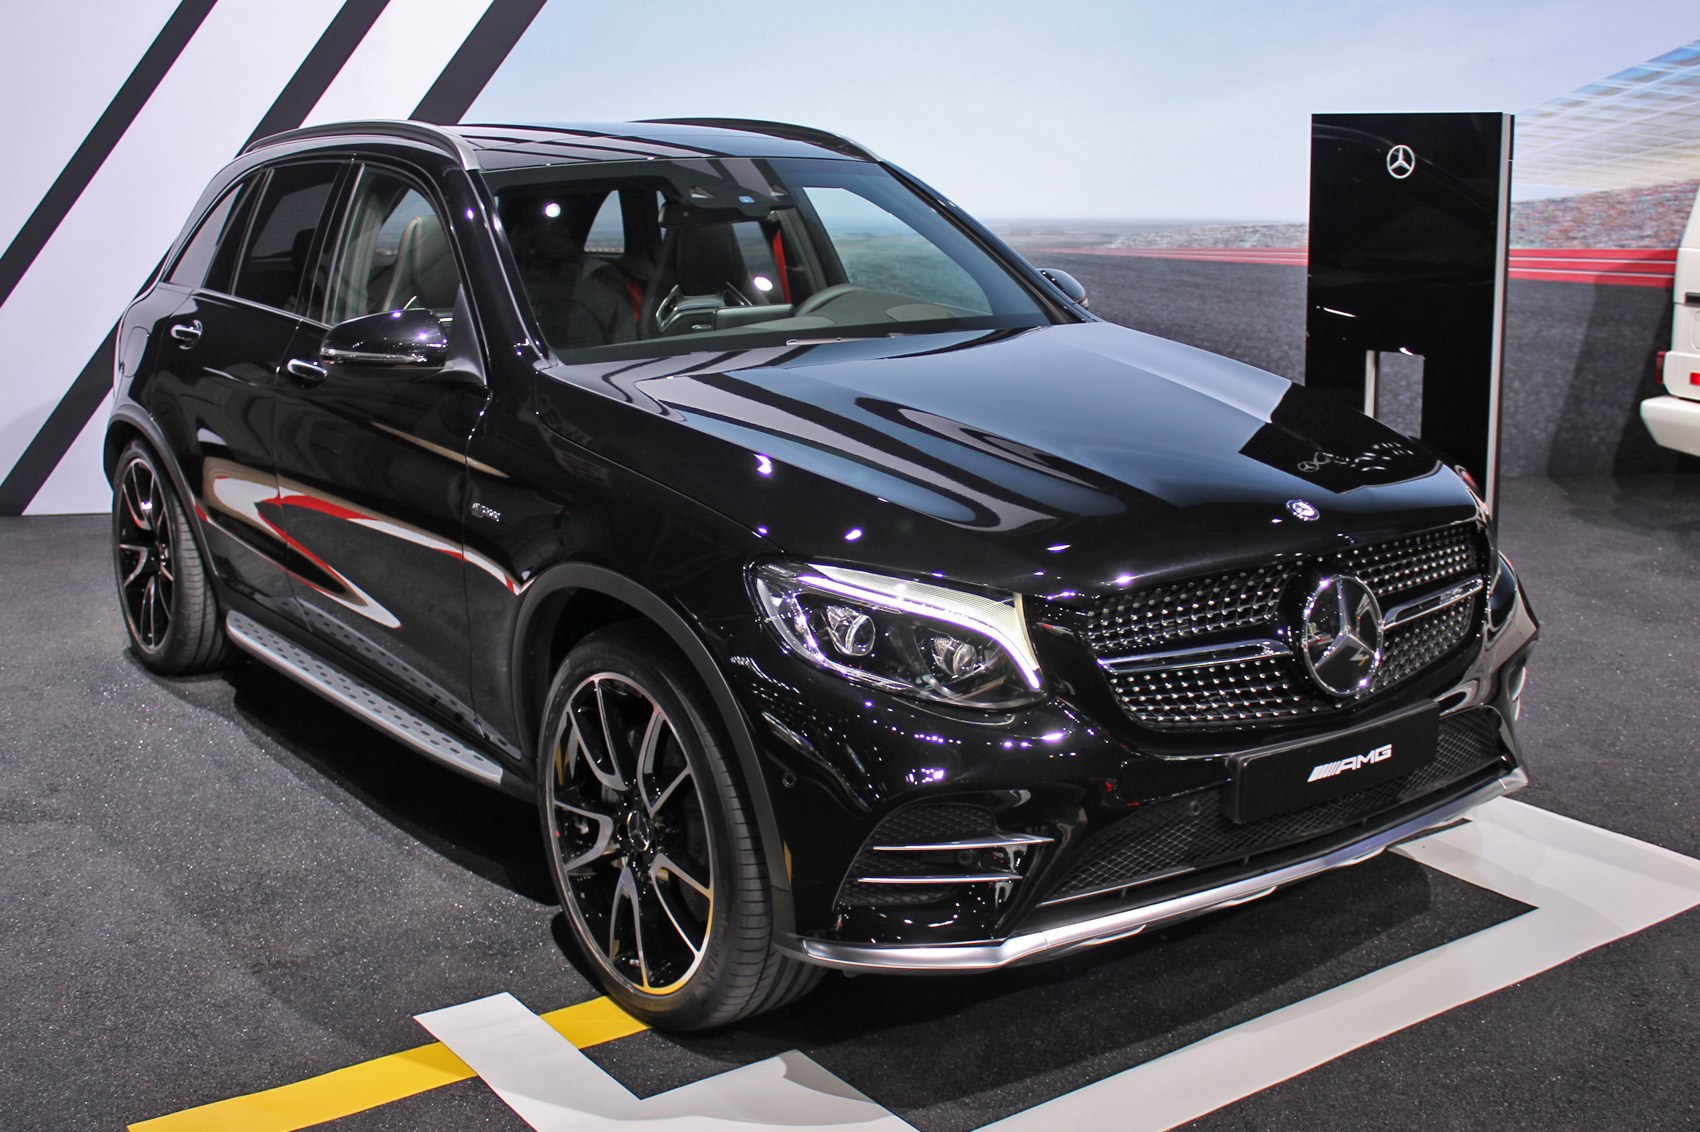 mercedes-amg glc 43 4matic is here: amg genes for all!car magazine